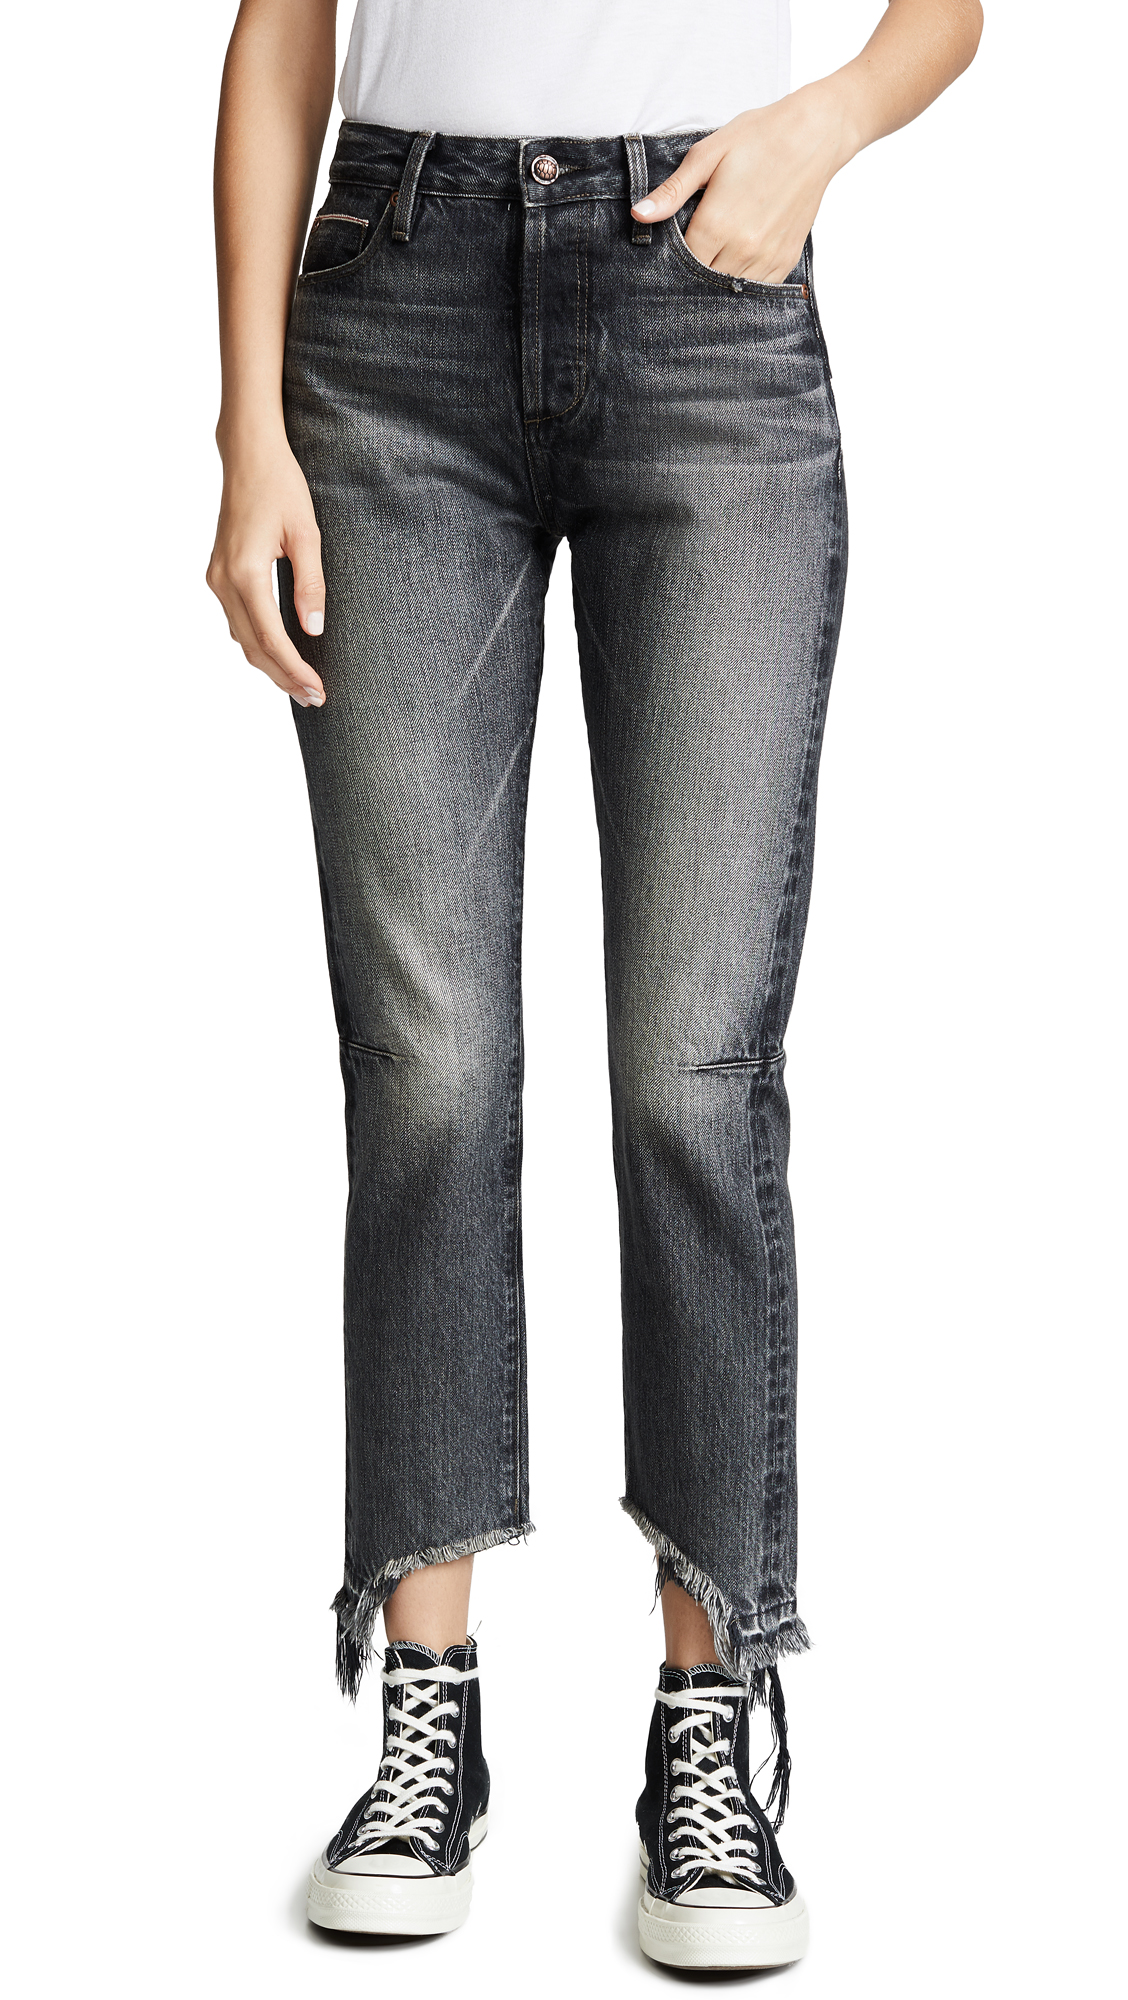 TORTOISE Dory High Rise Tapered Crop Jeans in Black Fade